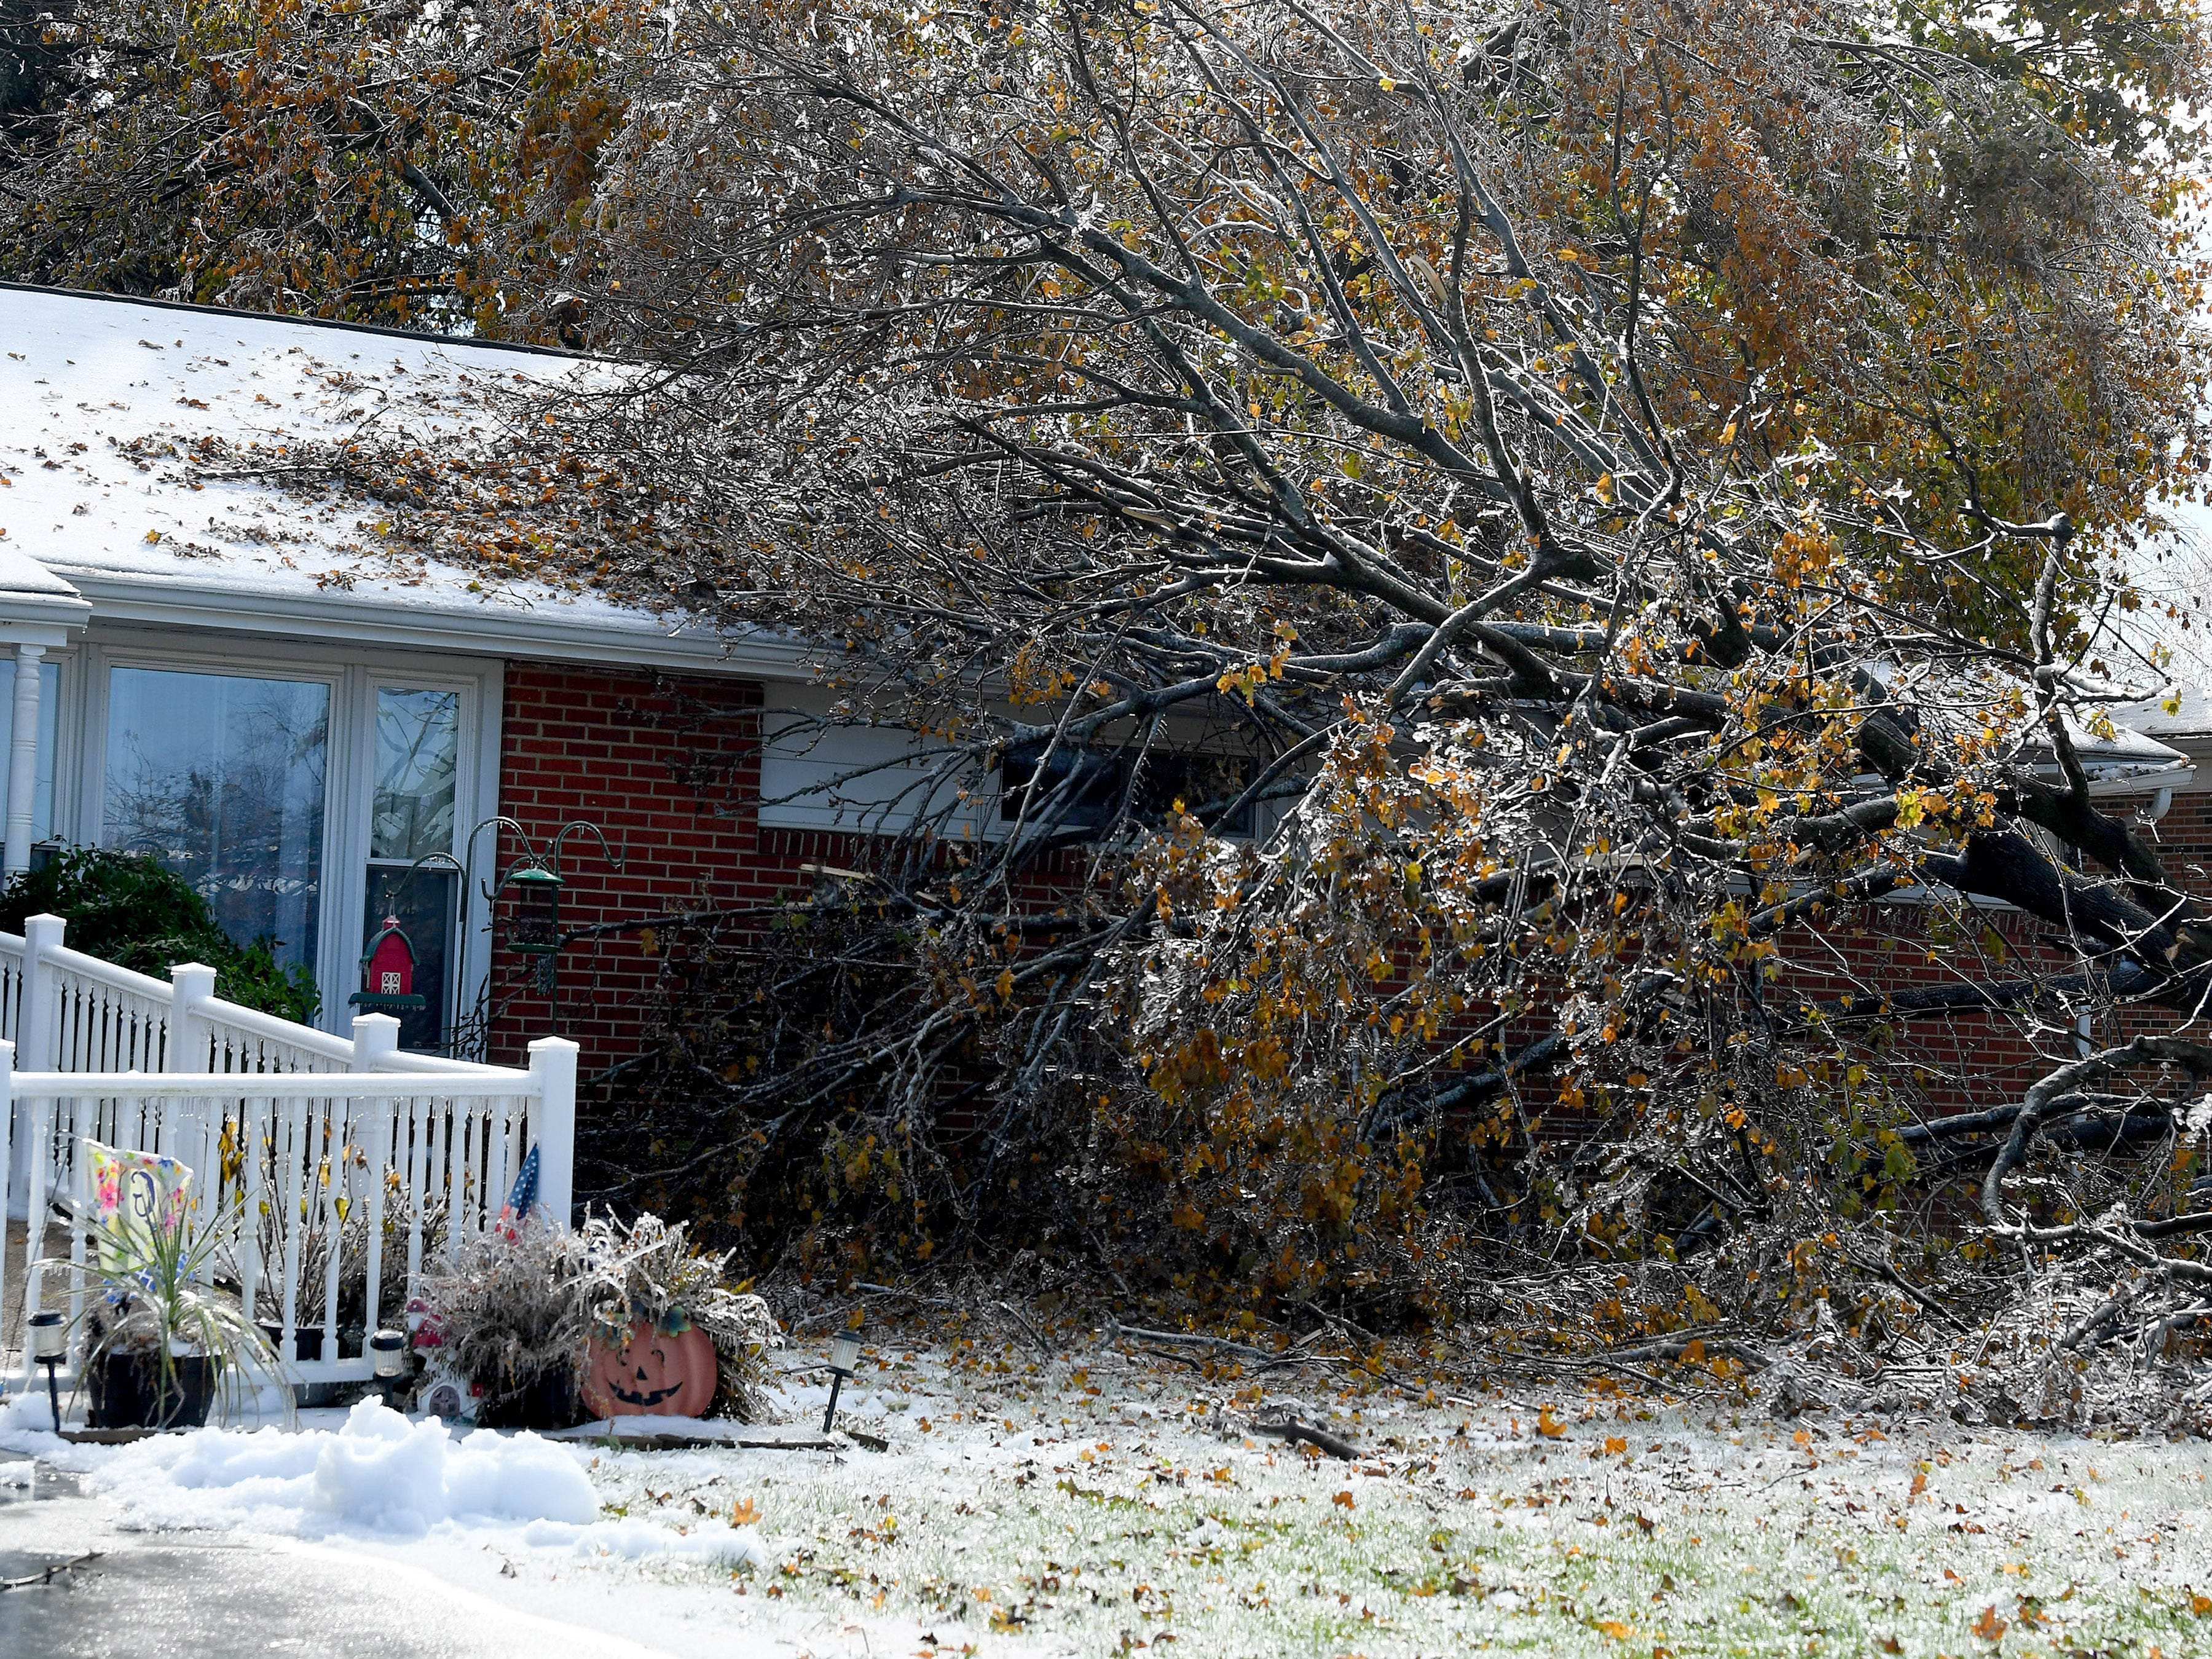 A fallen tree partially obscures the house it has fallen against in Fishersville in the wake of an ice storm Friday, Nov. 16, 2018.